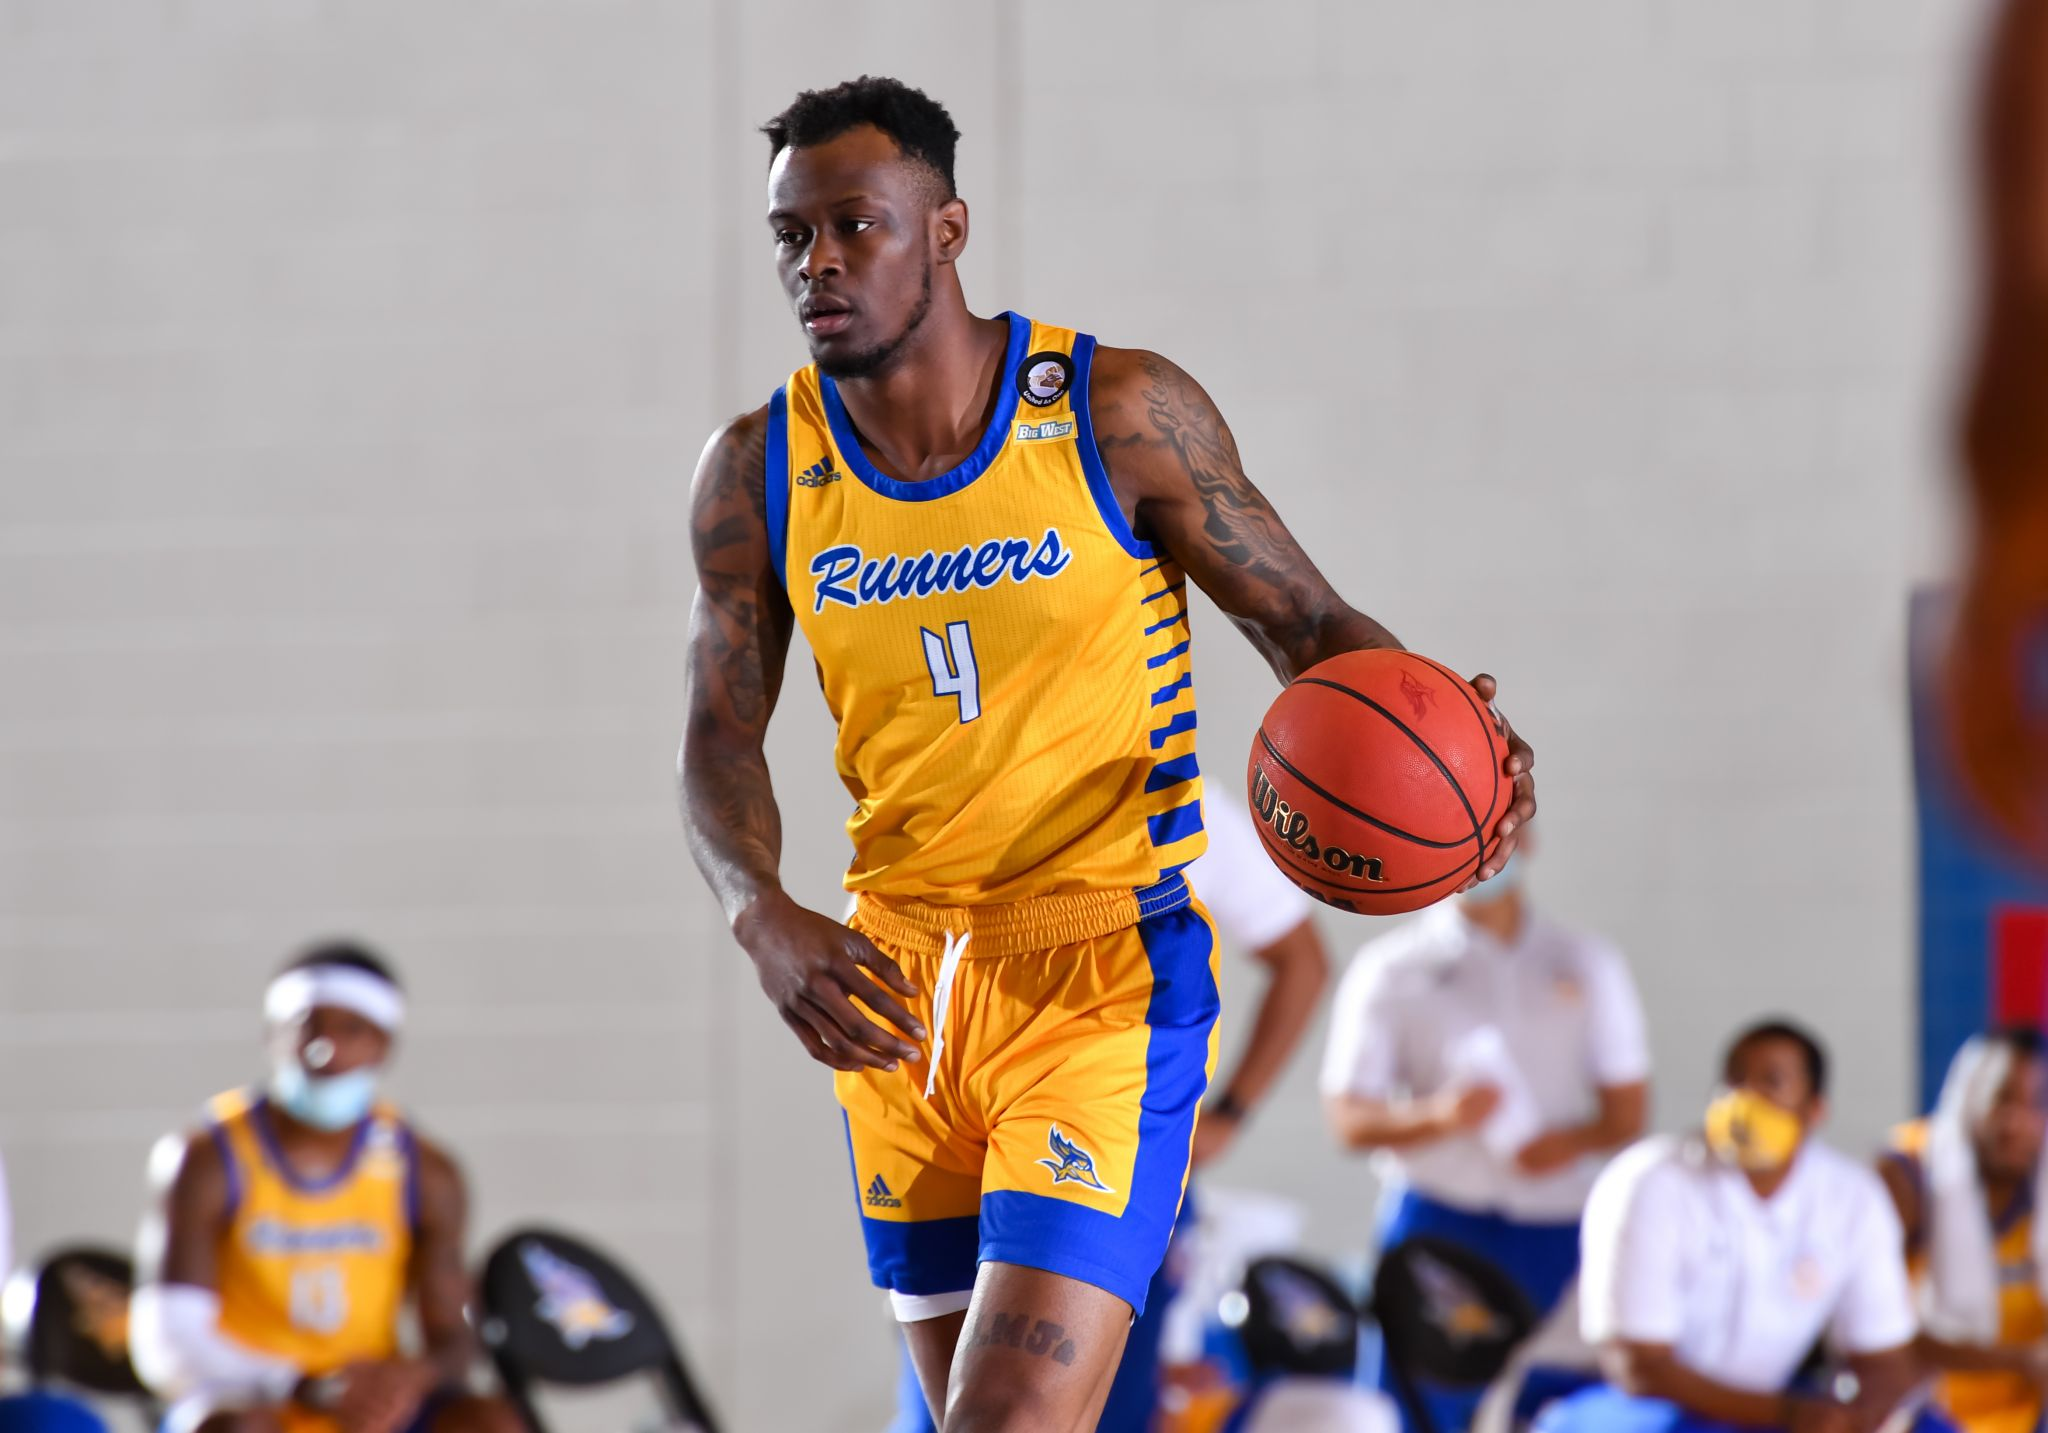 UH adds graduate transfer Taze Moore from Cal State Bakersfield